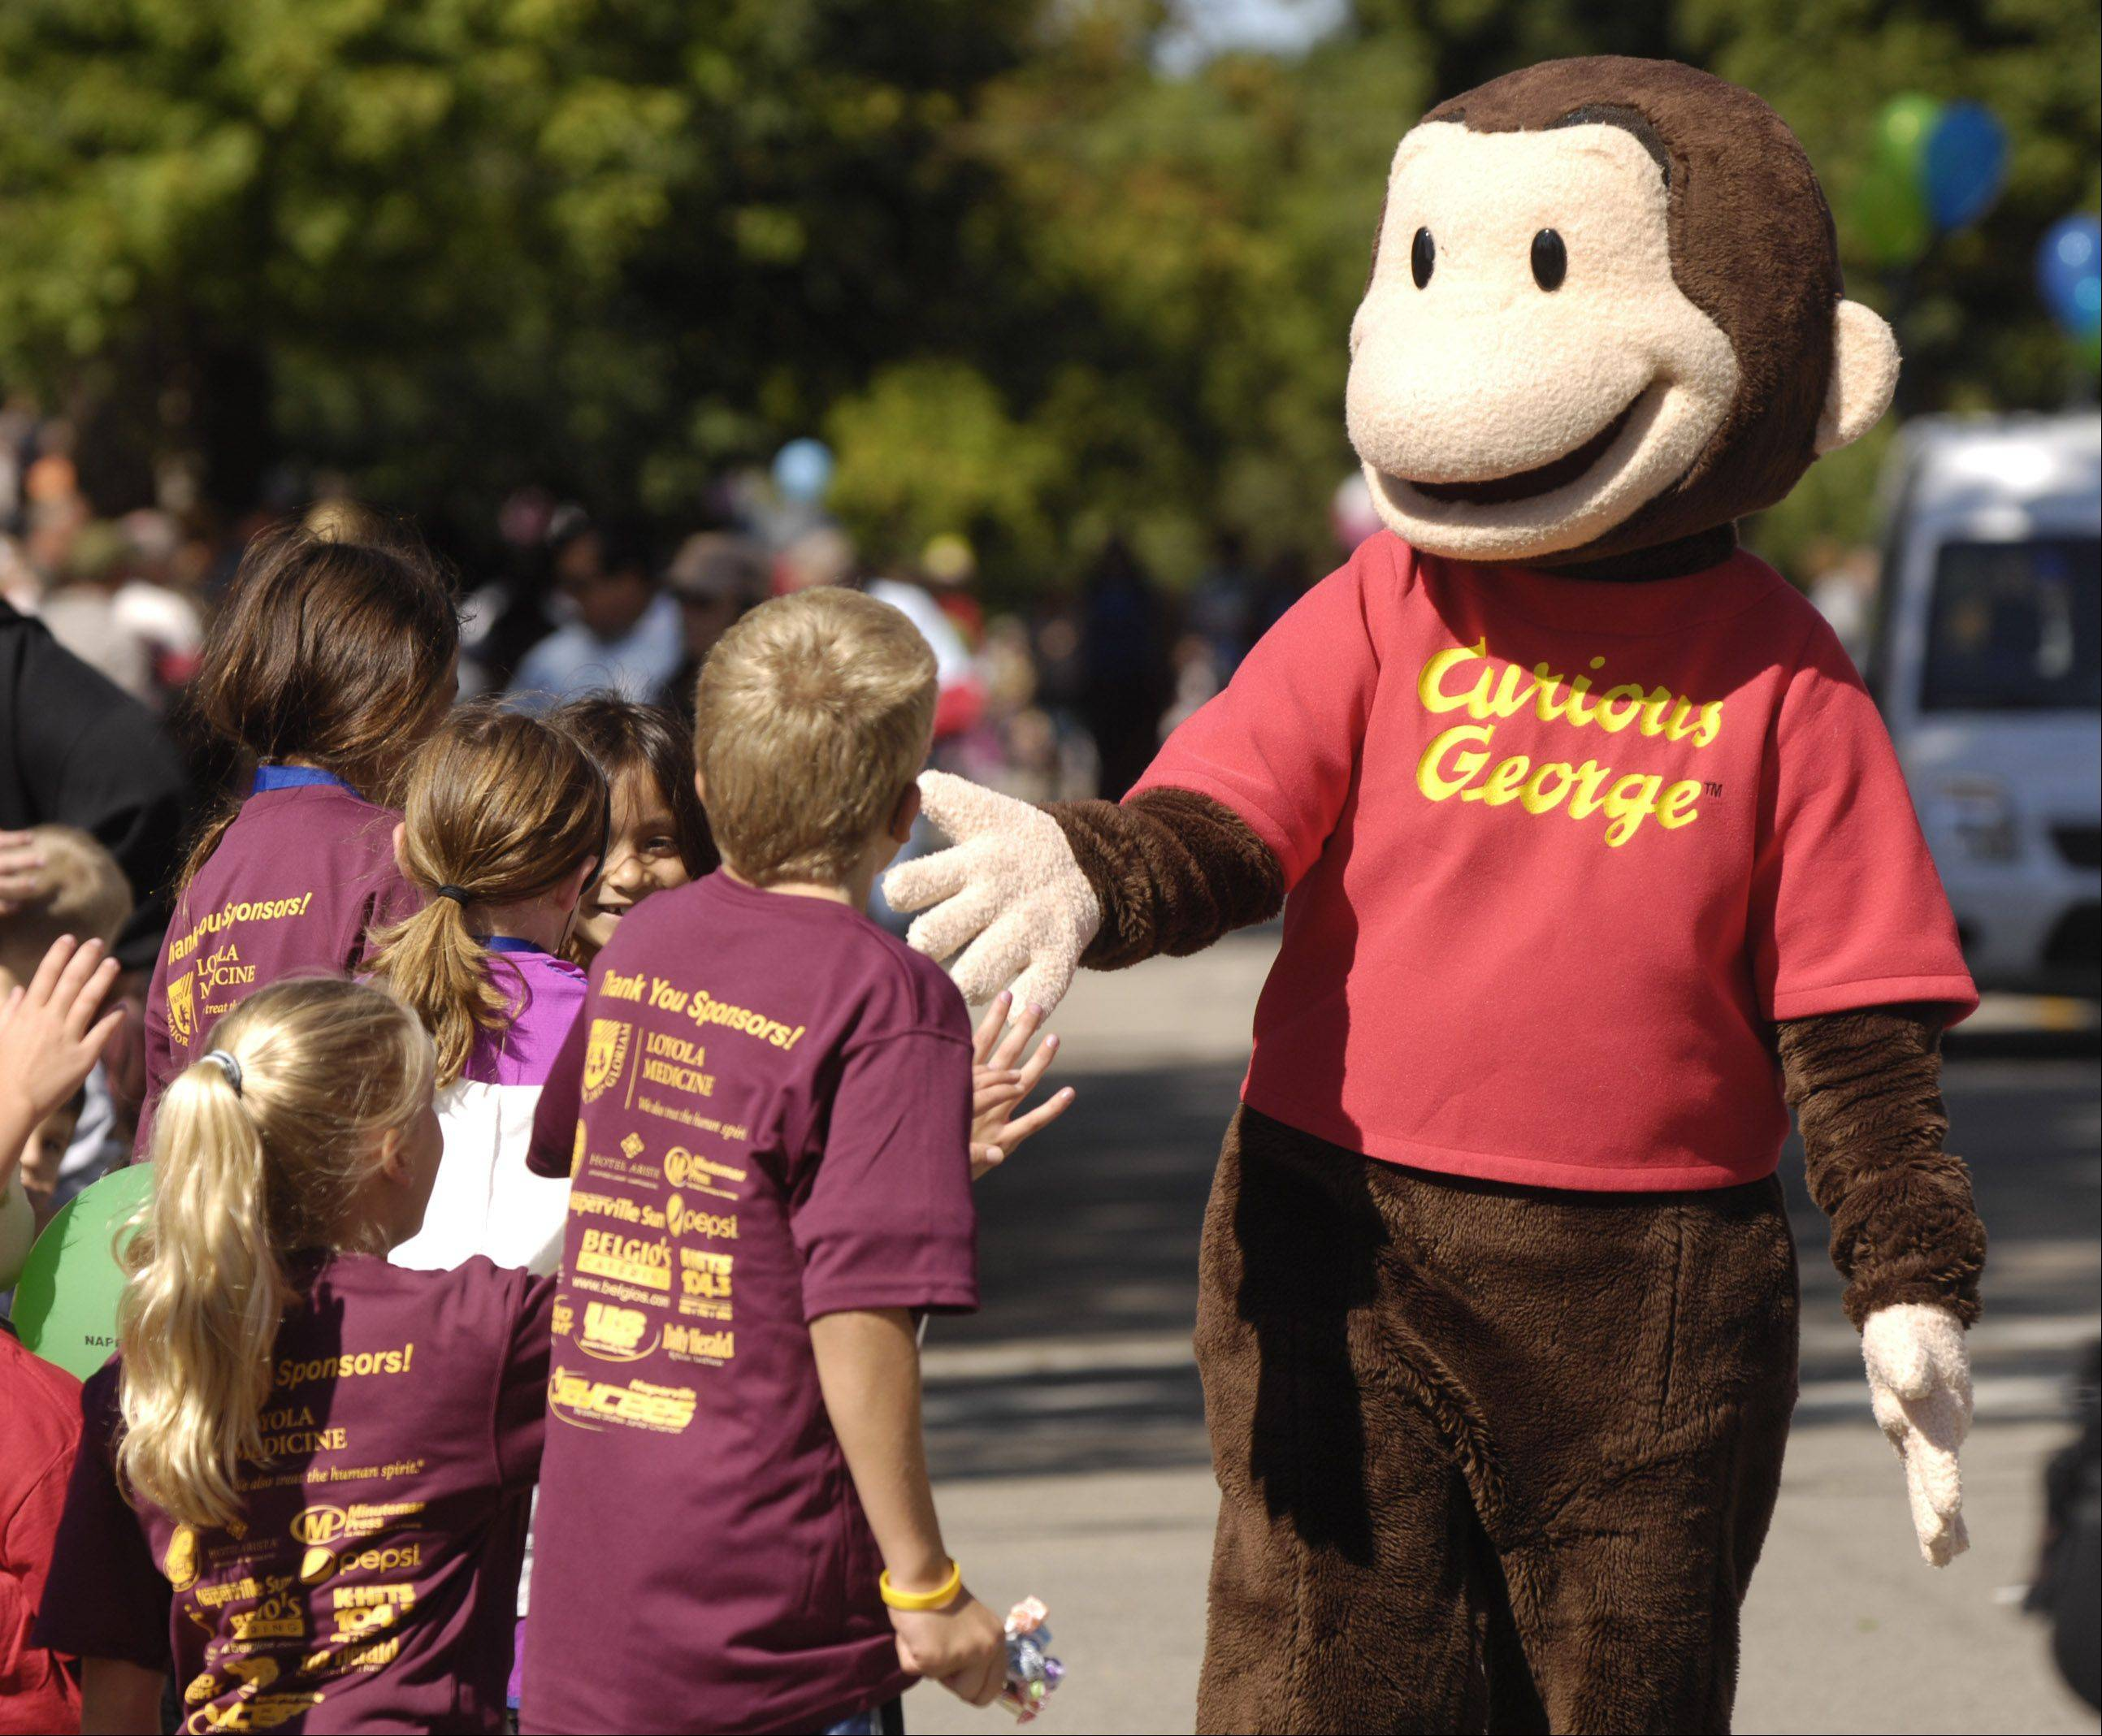 Children's book character Curious George shakes hands with kids along the parade route in Naperville.